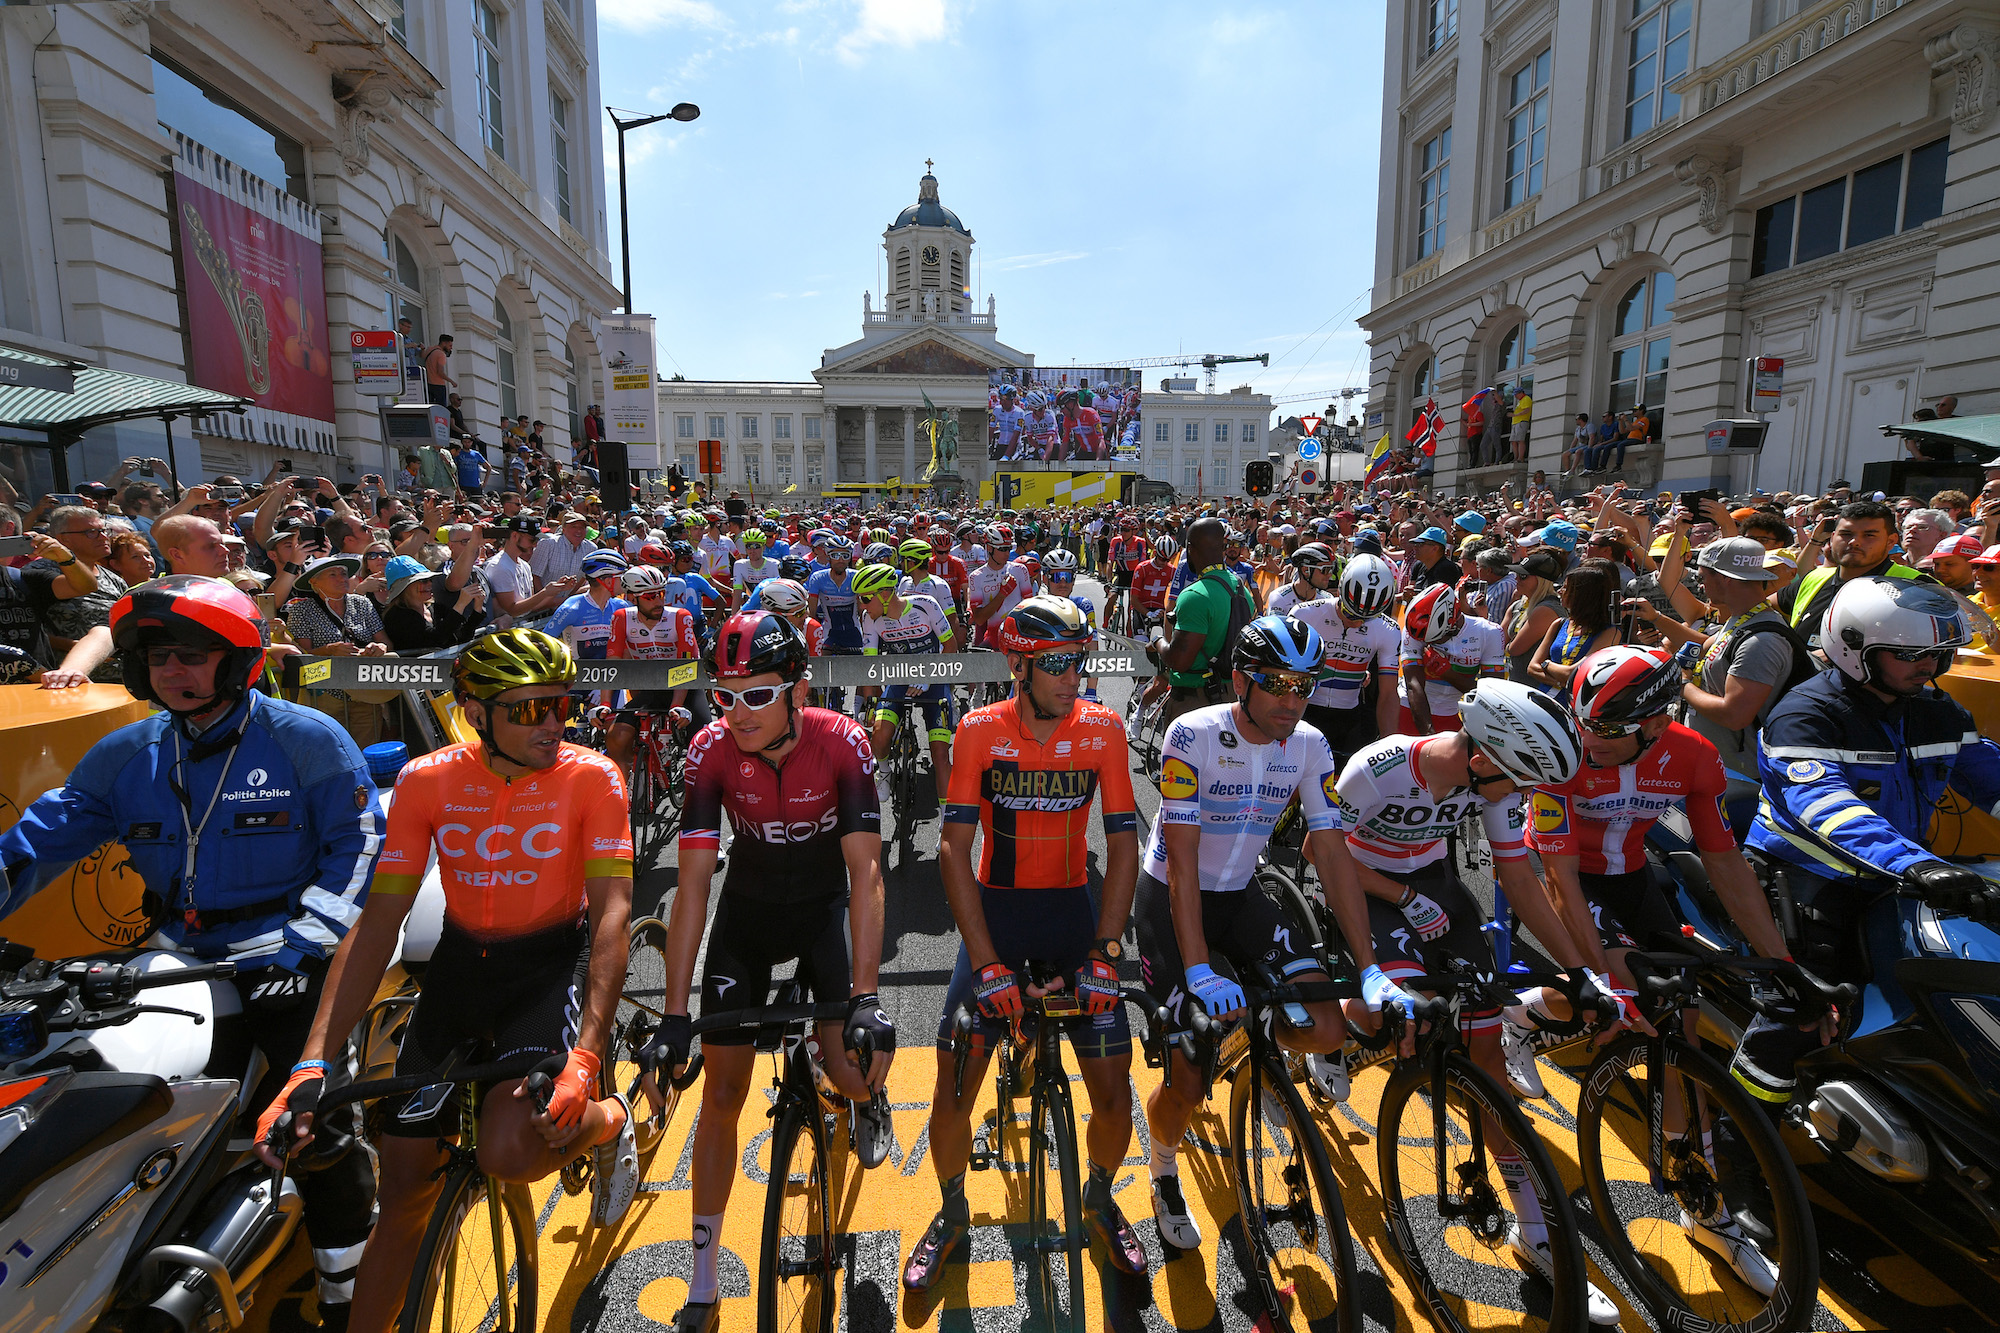 Tour de France and Giro d'Italia could both start from Prague in future, according to reports